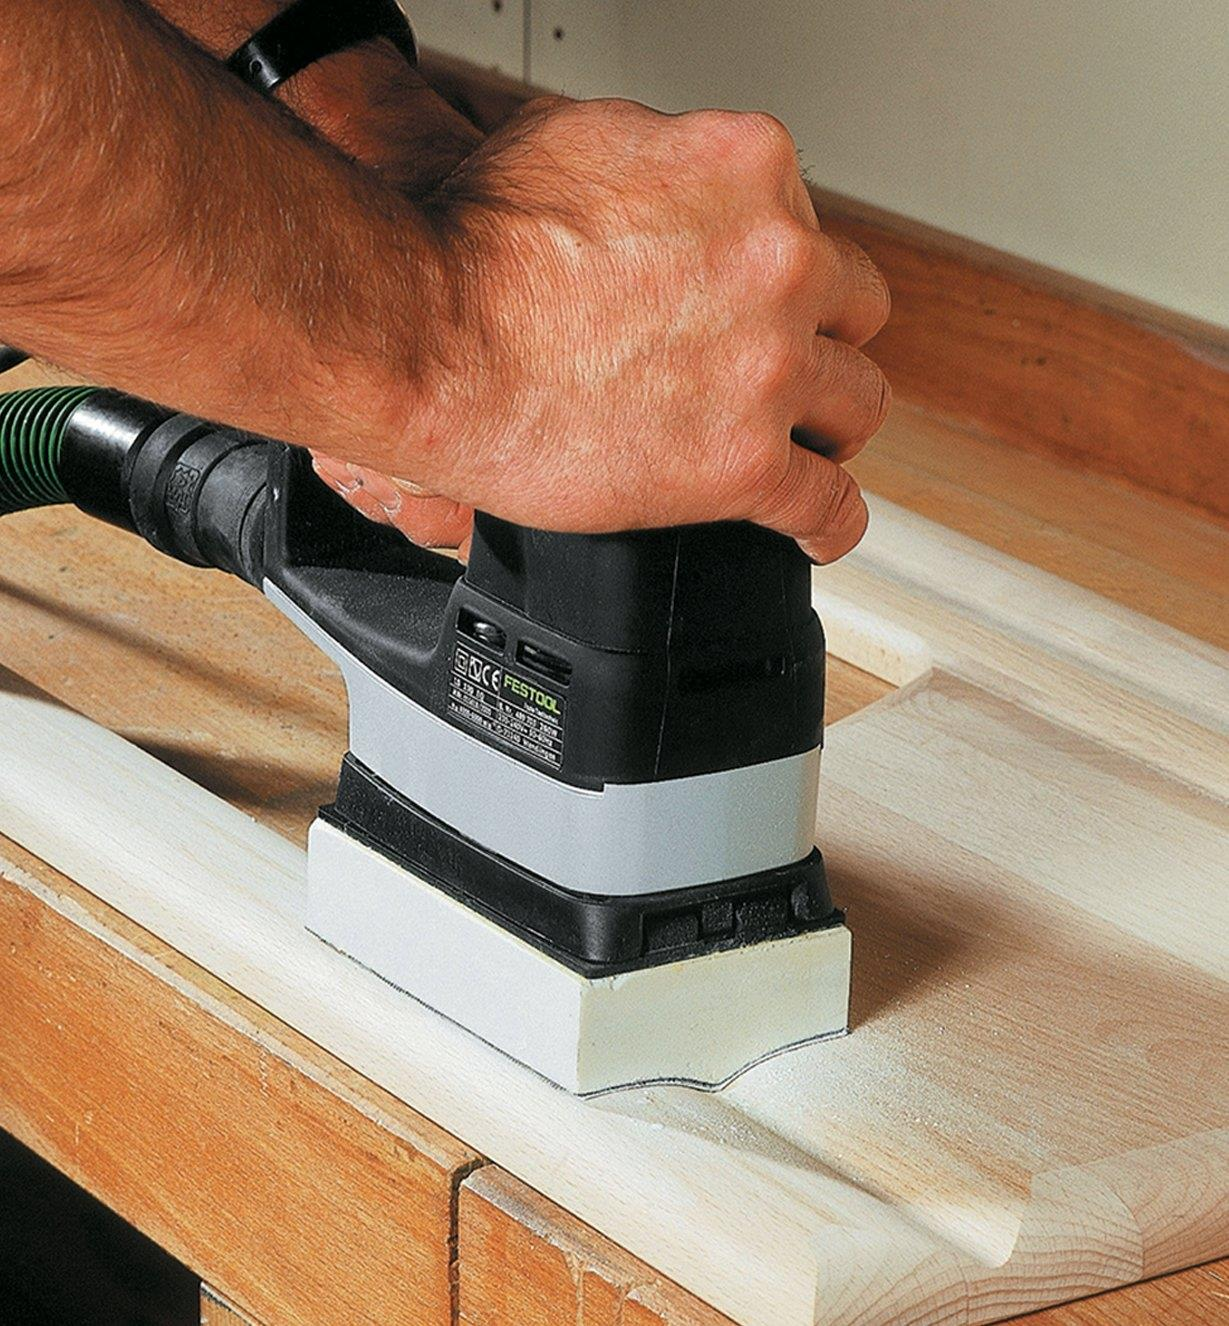 Sanding a profile with the DUPLEX LS 130 EQ Linear Sander